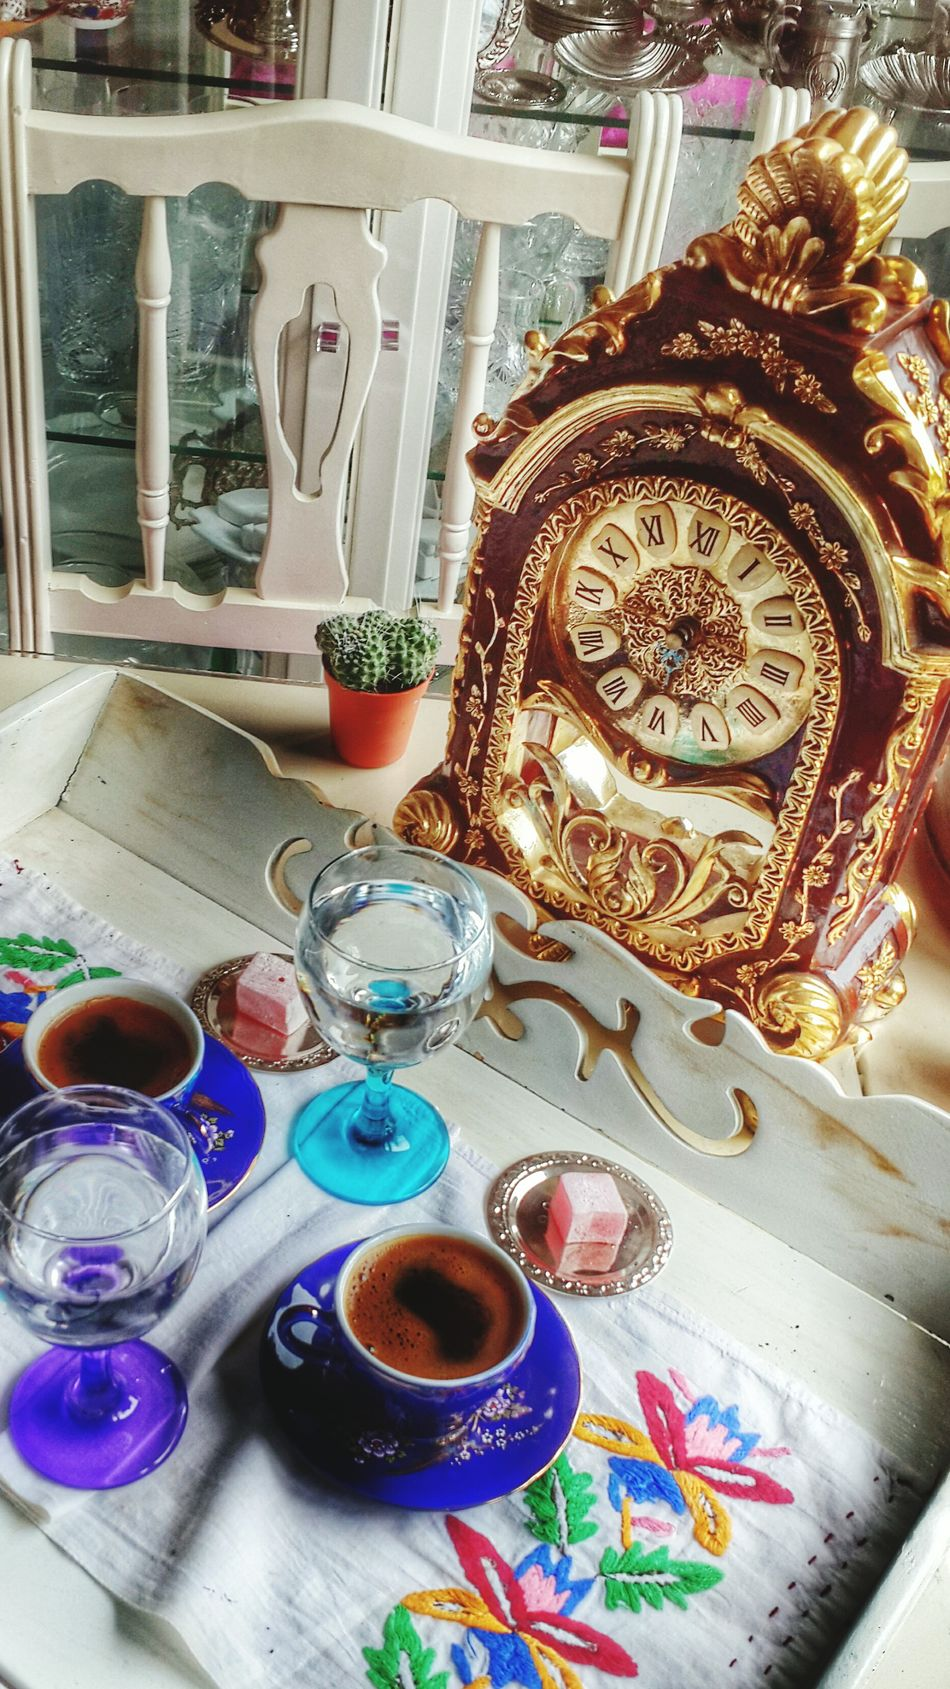 Enjoying Life Taking Photos Relaxing Home Sweet Home Clock EyeEm Best Shots Cafe Time Hanging Out ıstanbul, Turkey Turkey